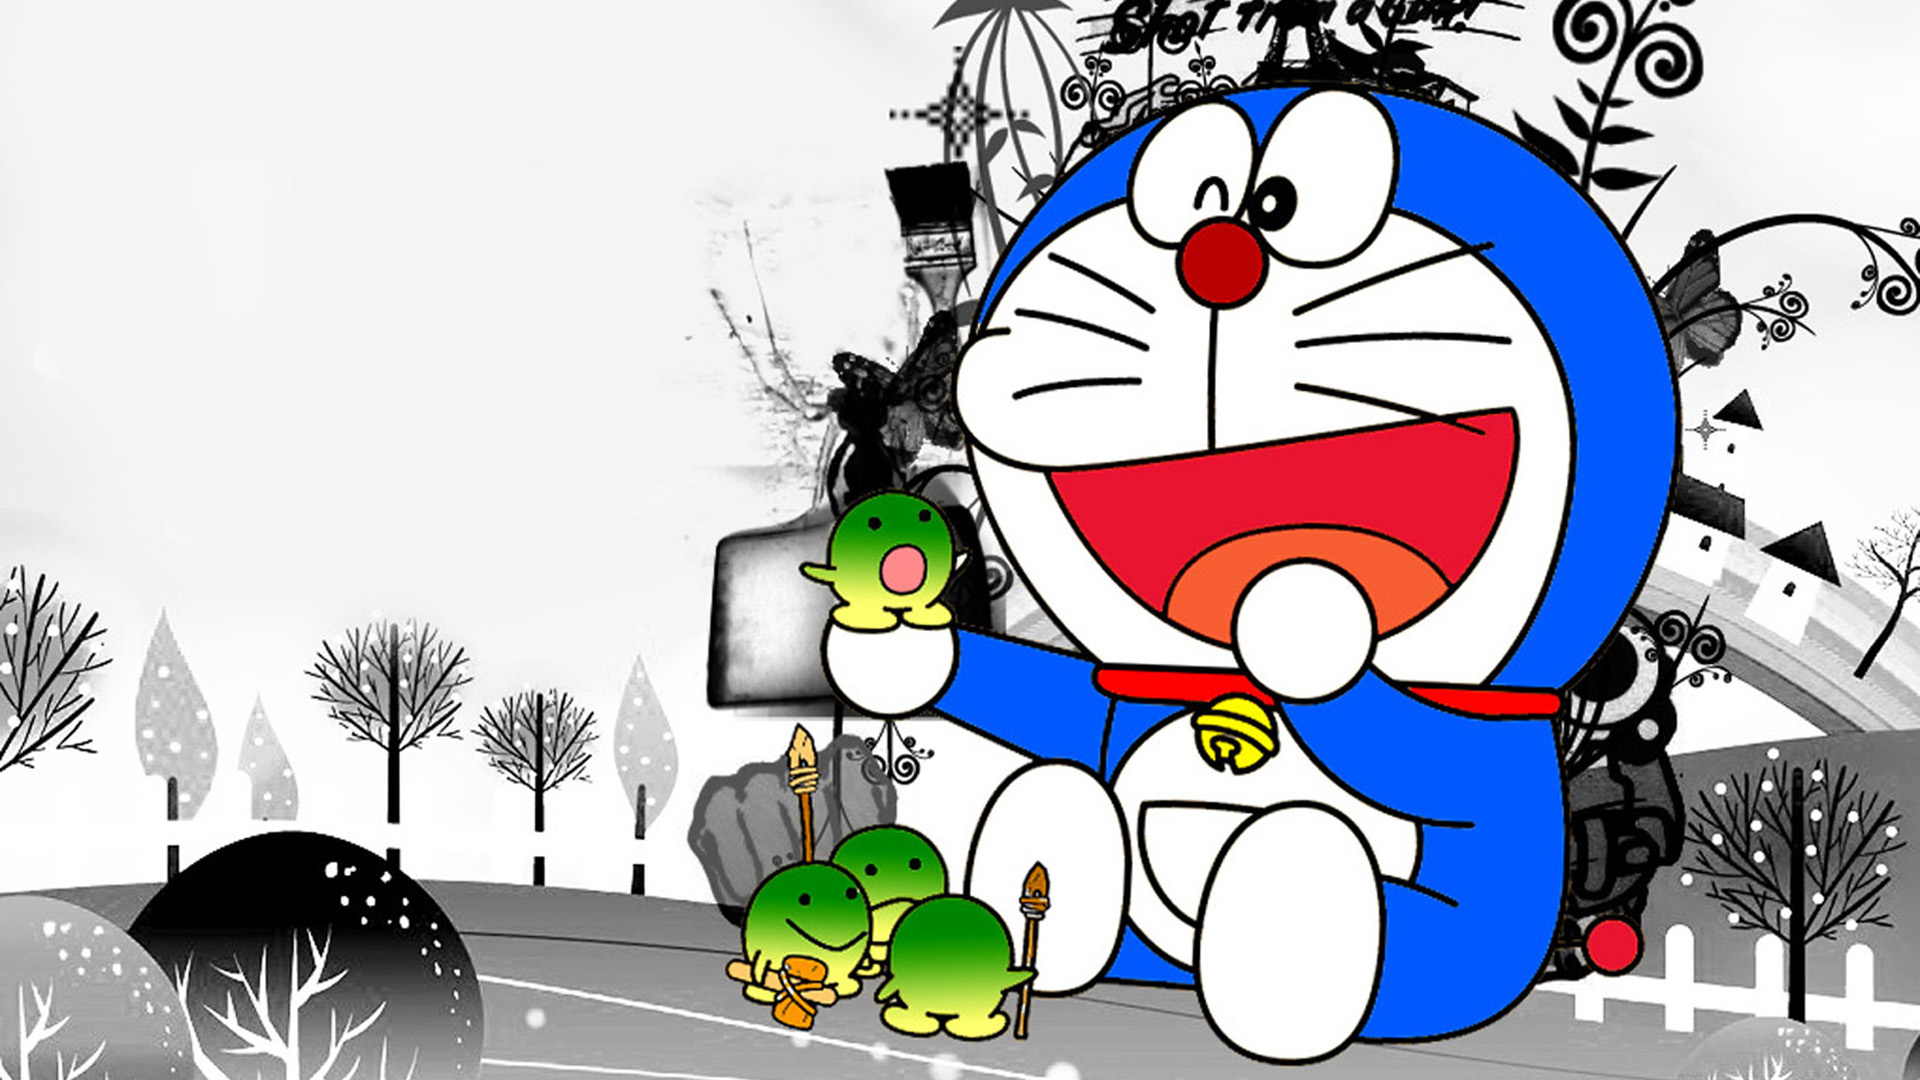 Funny Doraemon Cartoon Black White HD Wallpaper Image